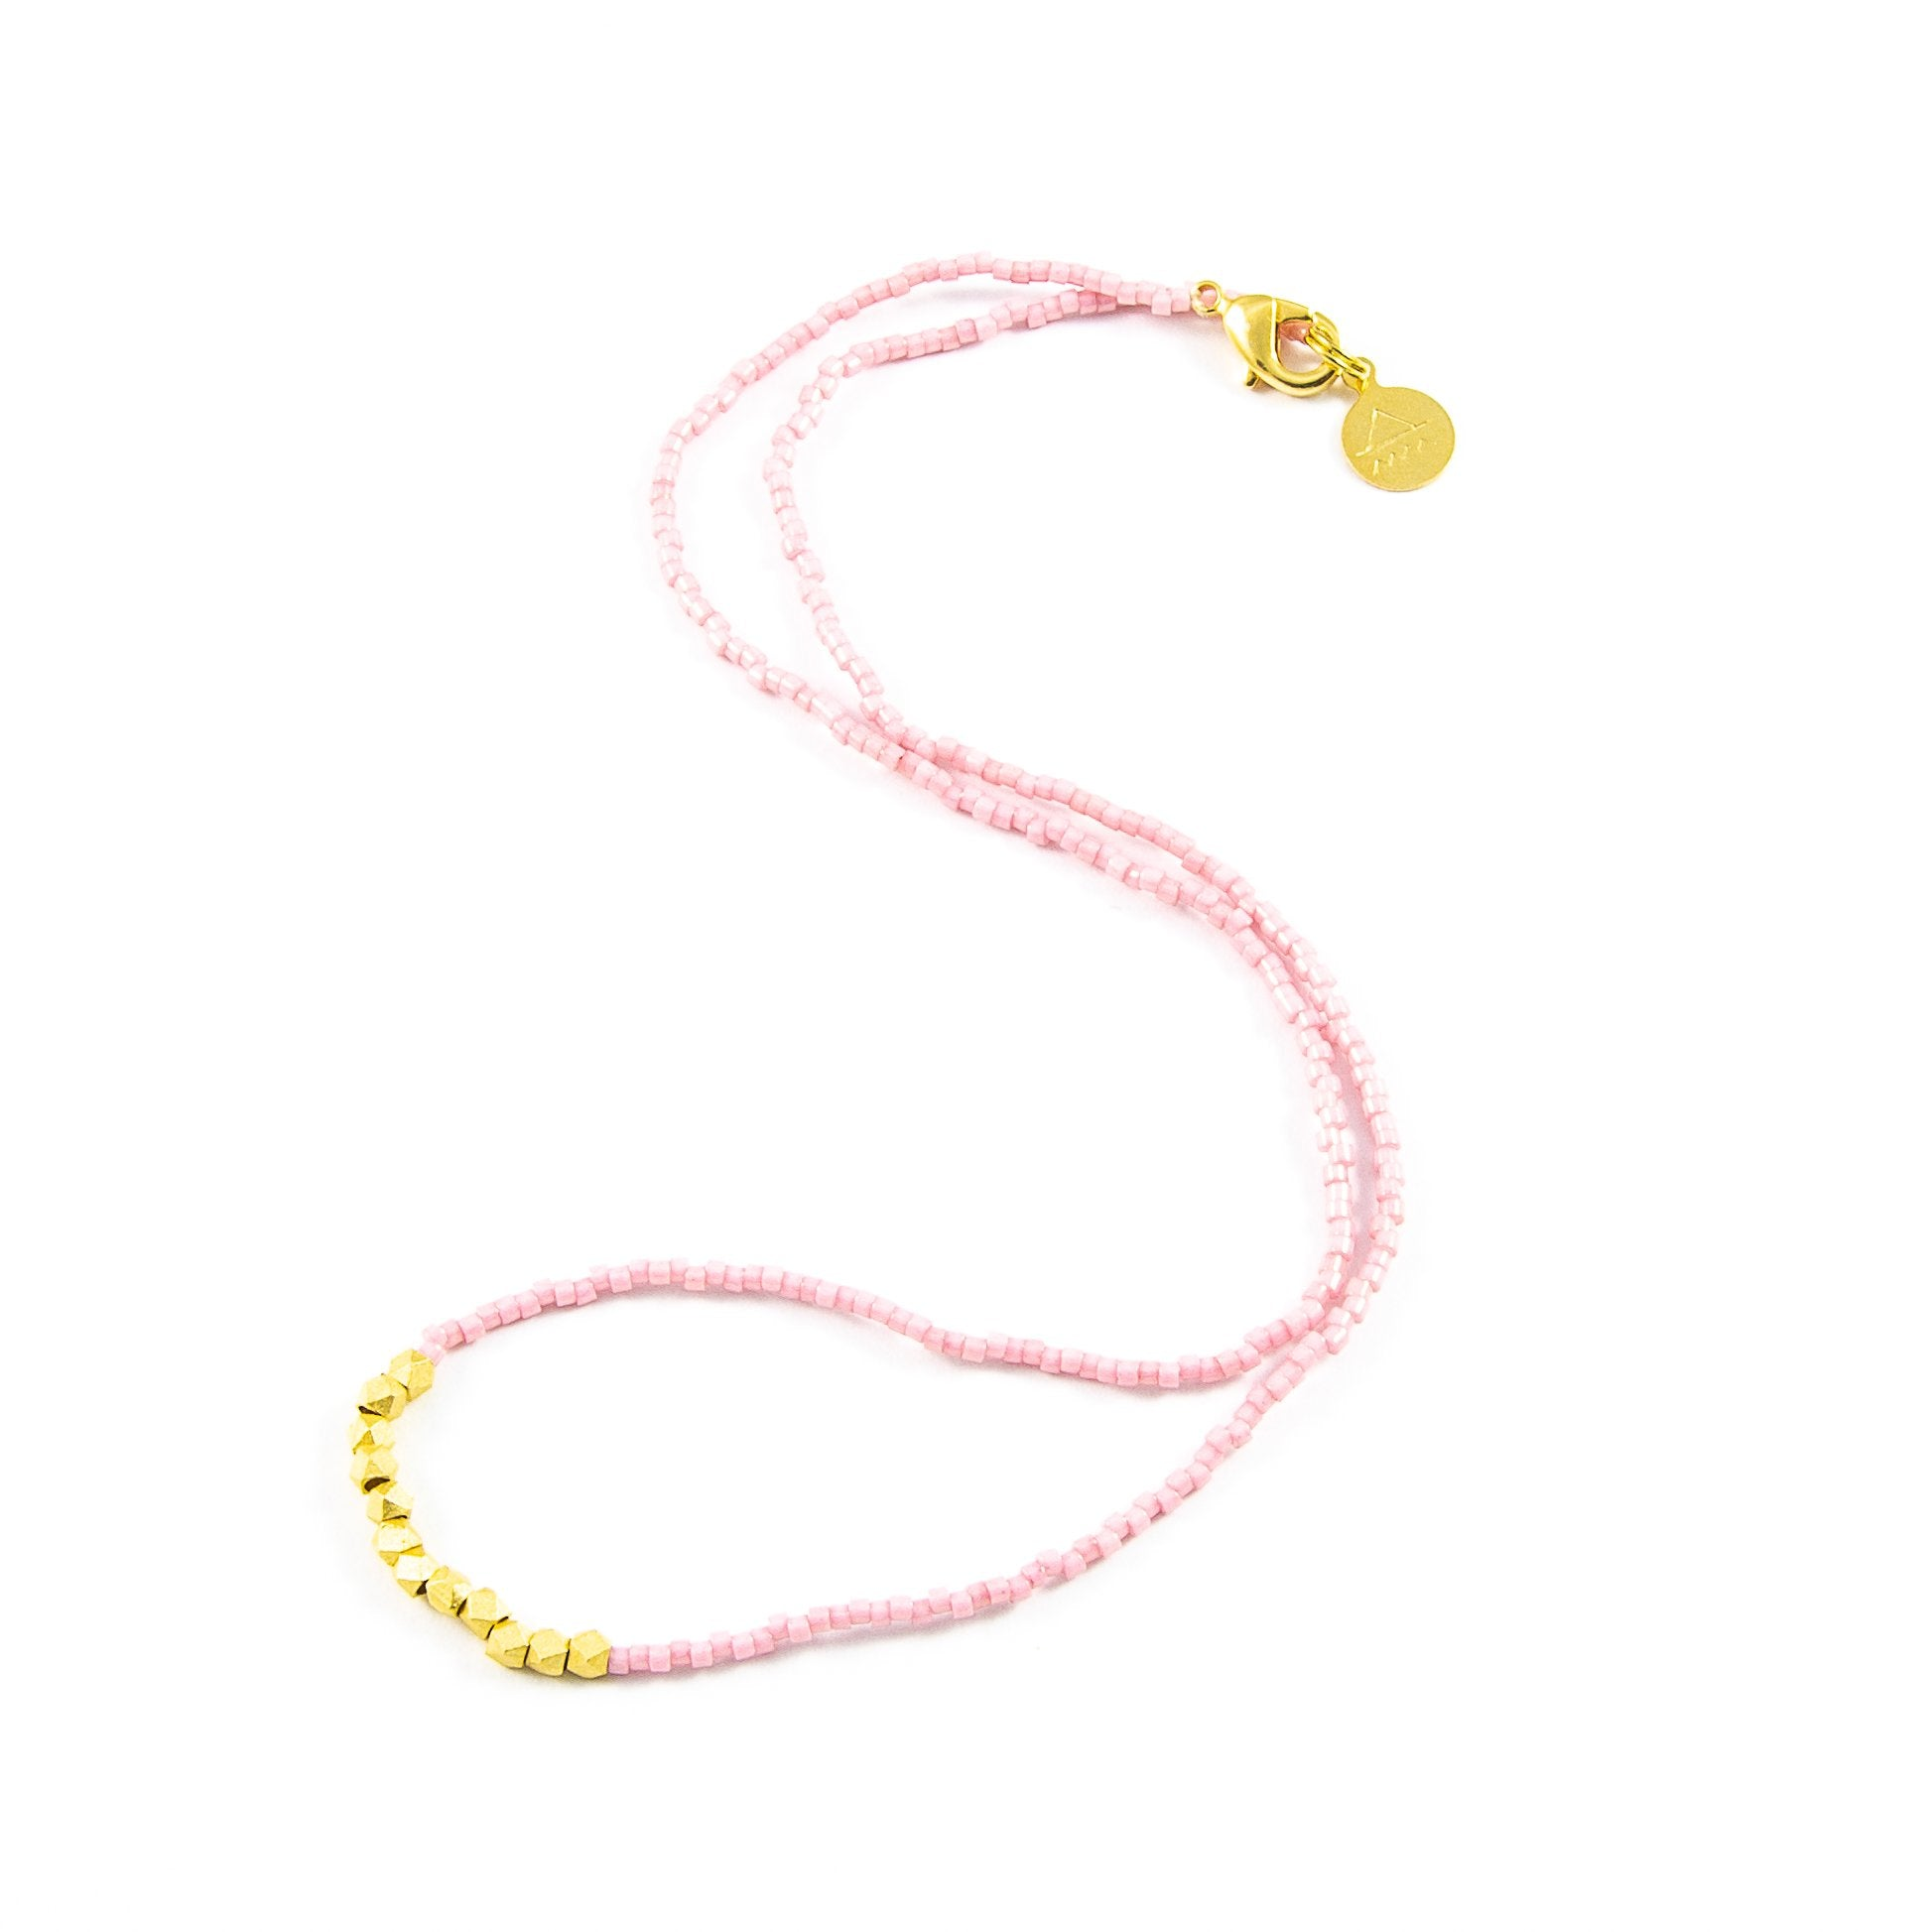 Blush Day to Night Necklace in Gold